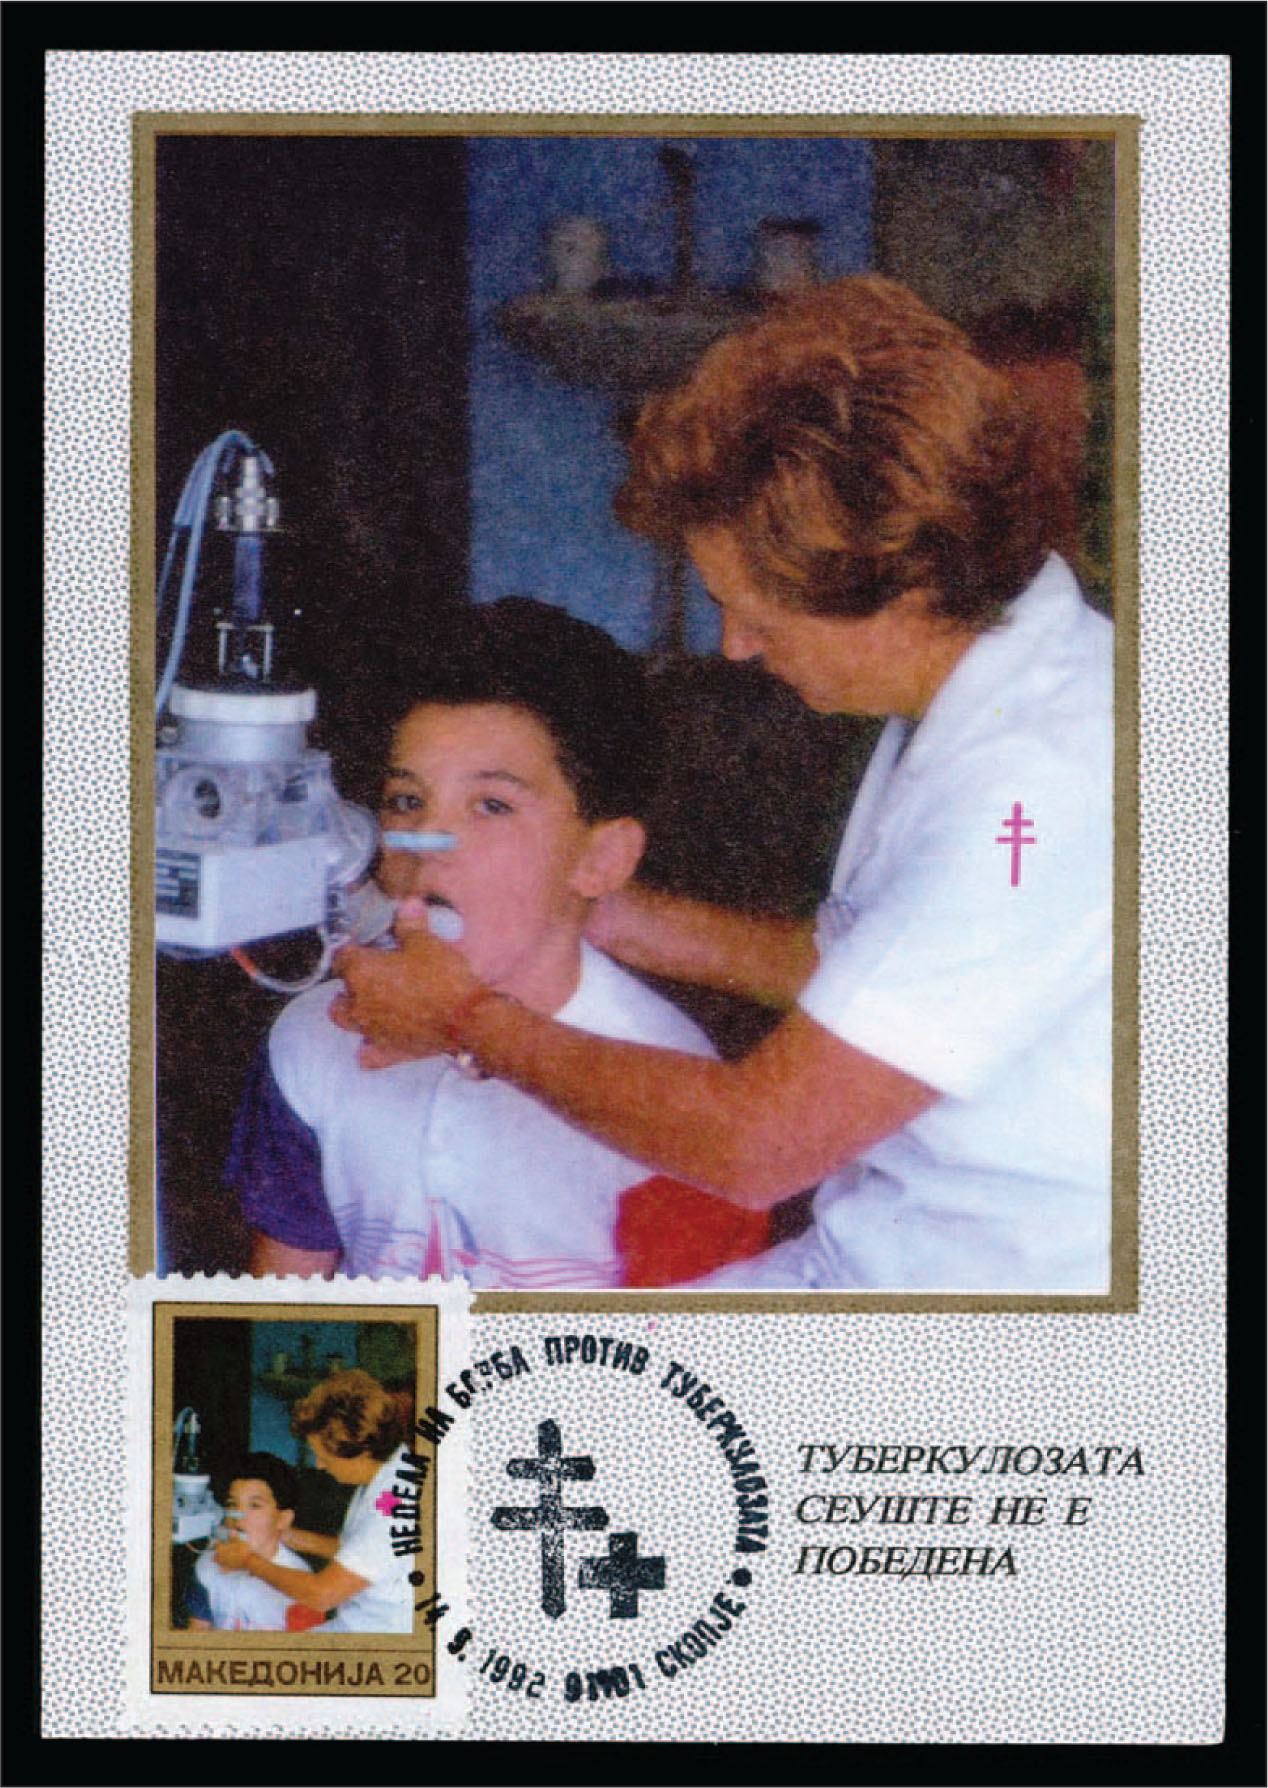 A 1992 Postcard and Stamp from Macedonia, Issued for the Fight Against TB, Show a Child Undergoing Spirometry/pulmonary Function Testing.